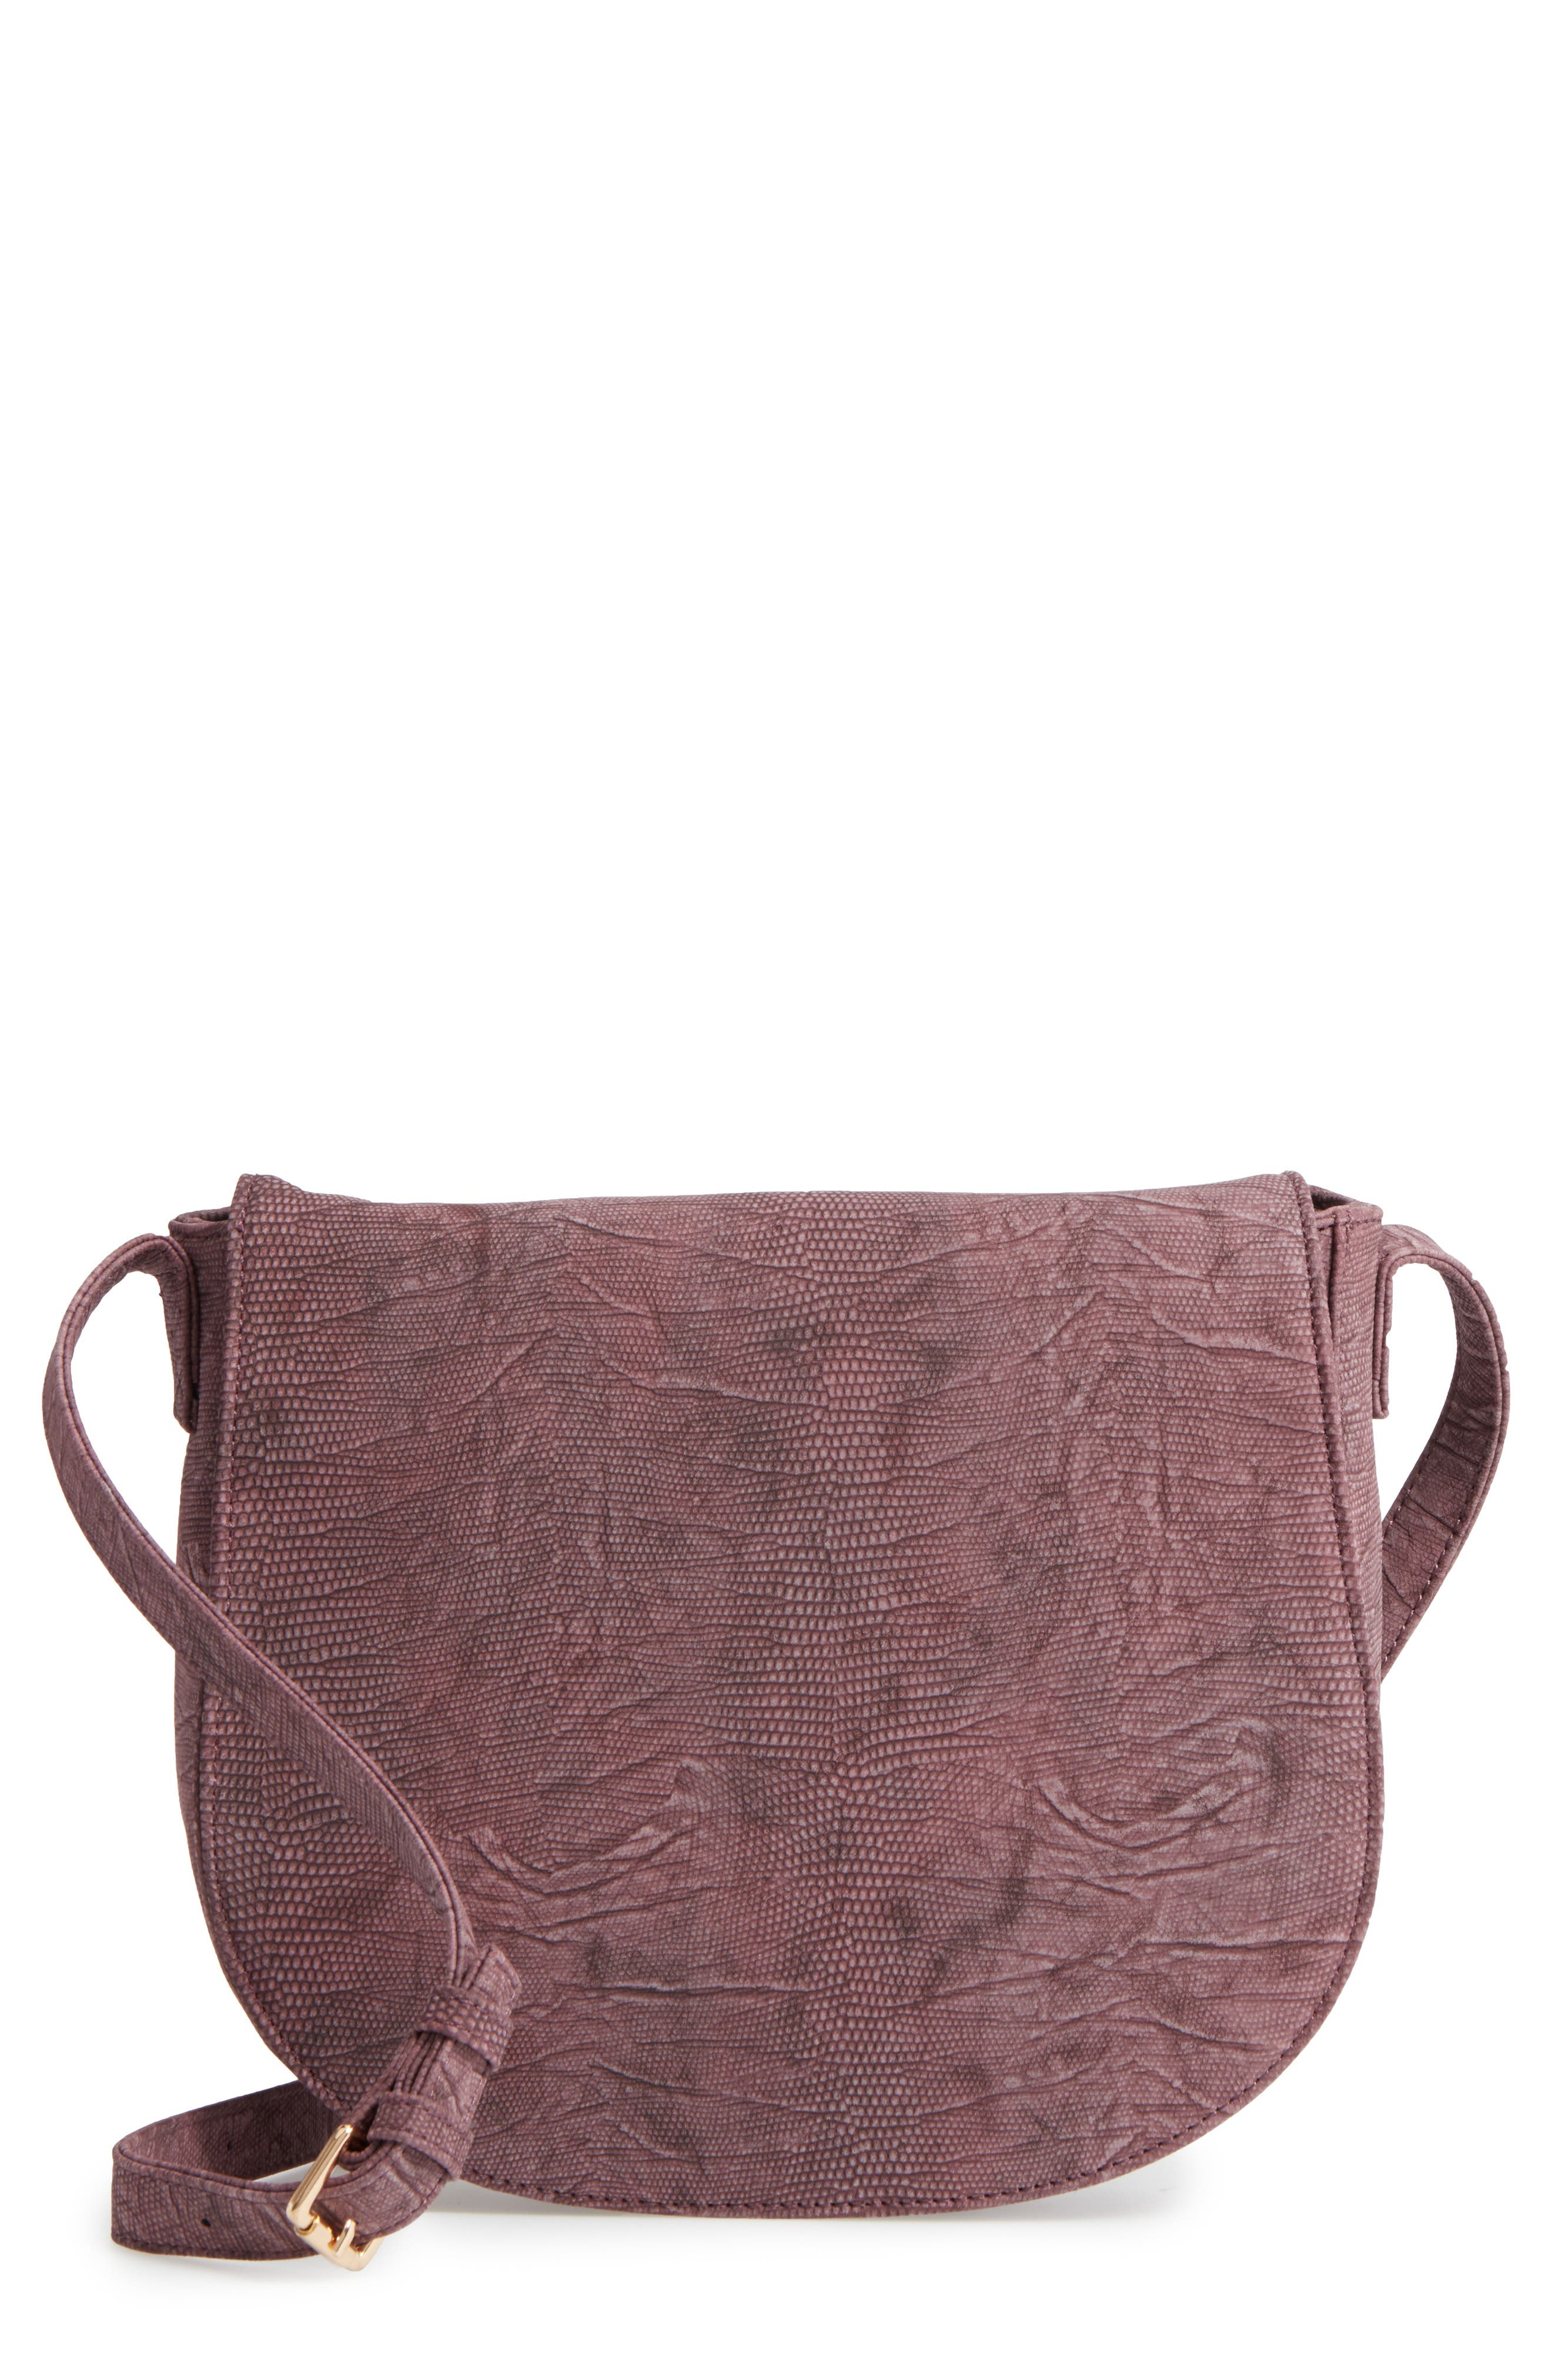 Livvy Faux Leather Crossbody Saddle Bag,                             Main thumbnail 1, color,                             Oxblood